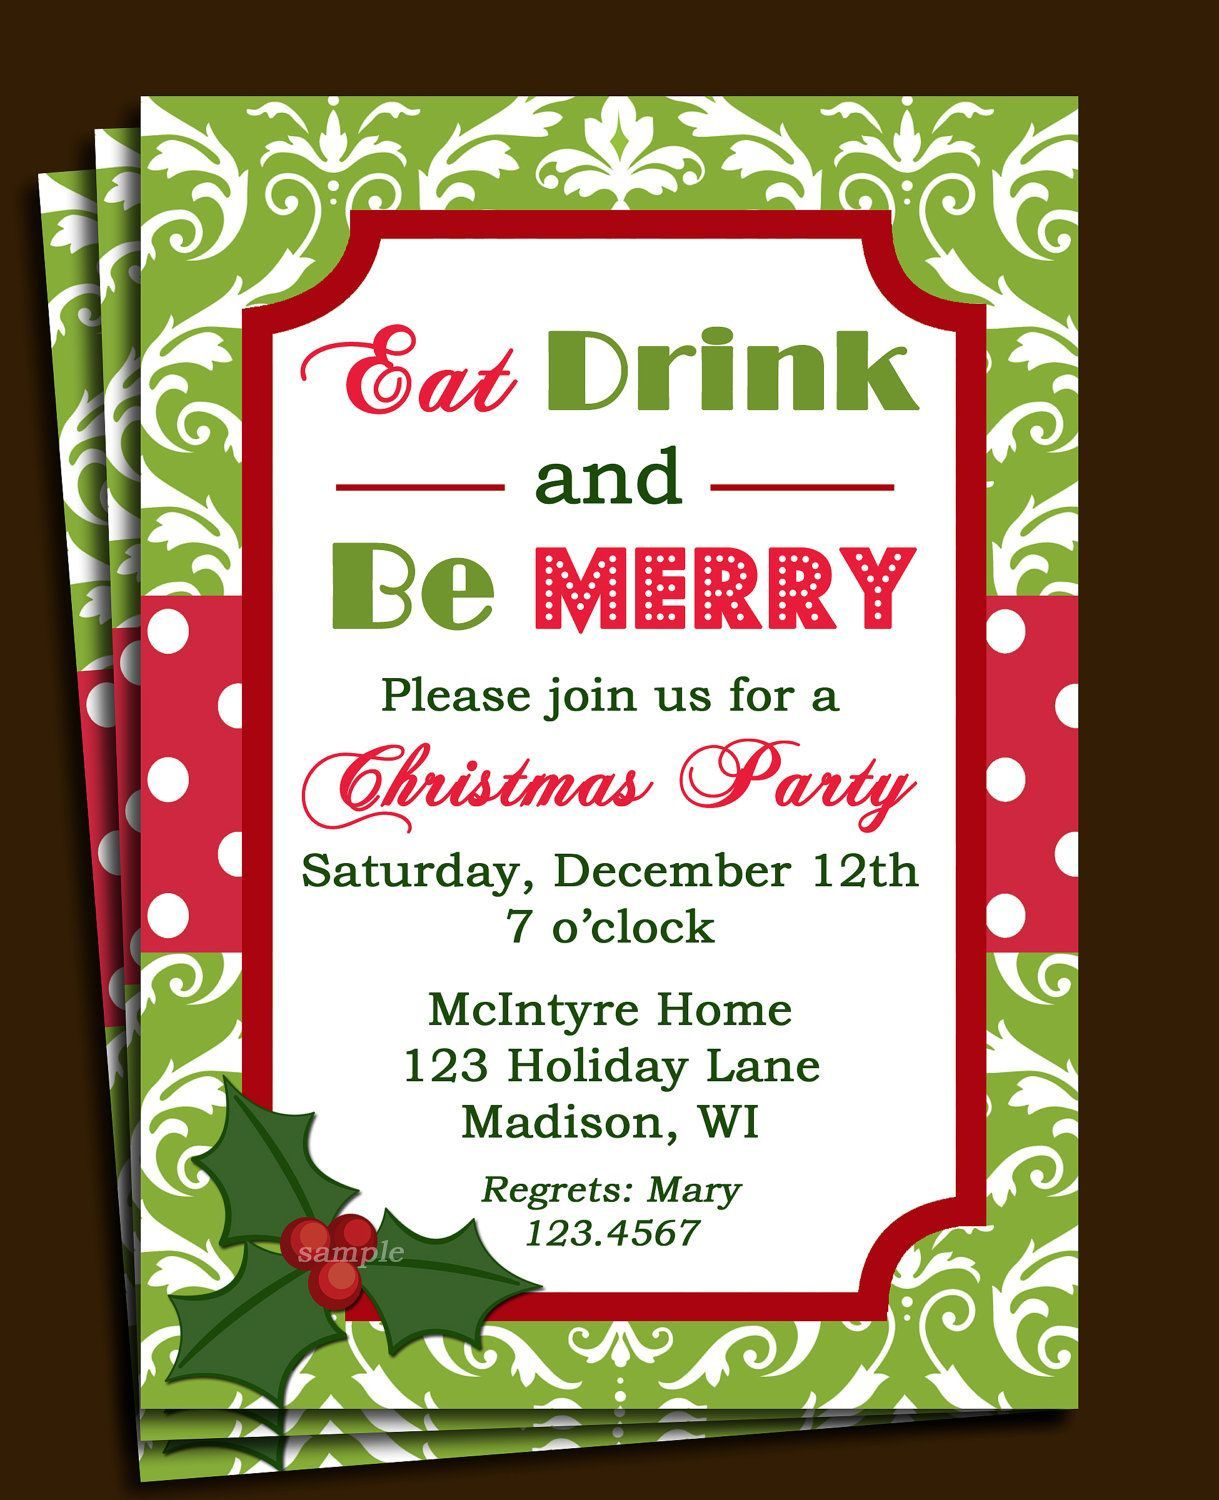 007 Breathtaking Free Holiday Party Invitation Template For Word Highest Clarity Full